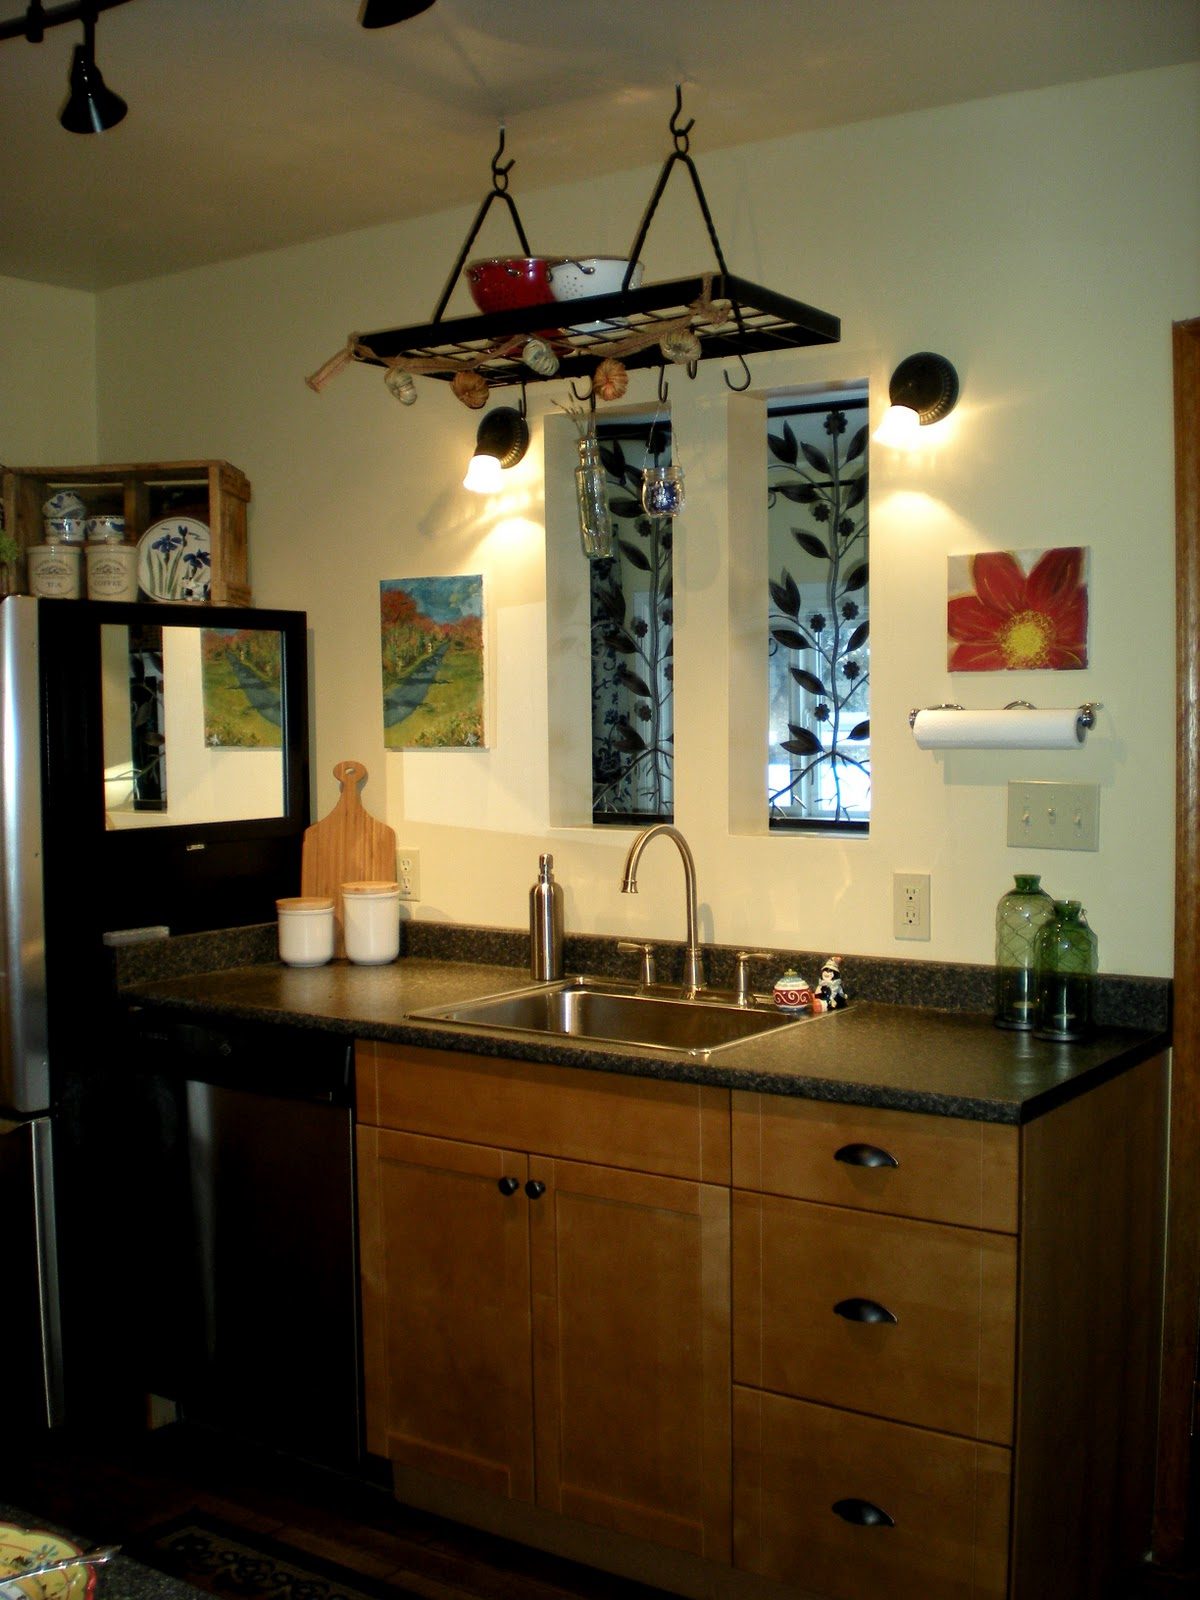 S Cottage Industrial Style Home Tour Debbiedoos - 1930's kitchen light fixtures